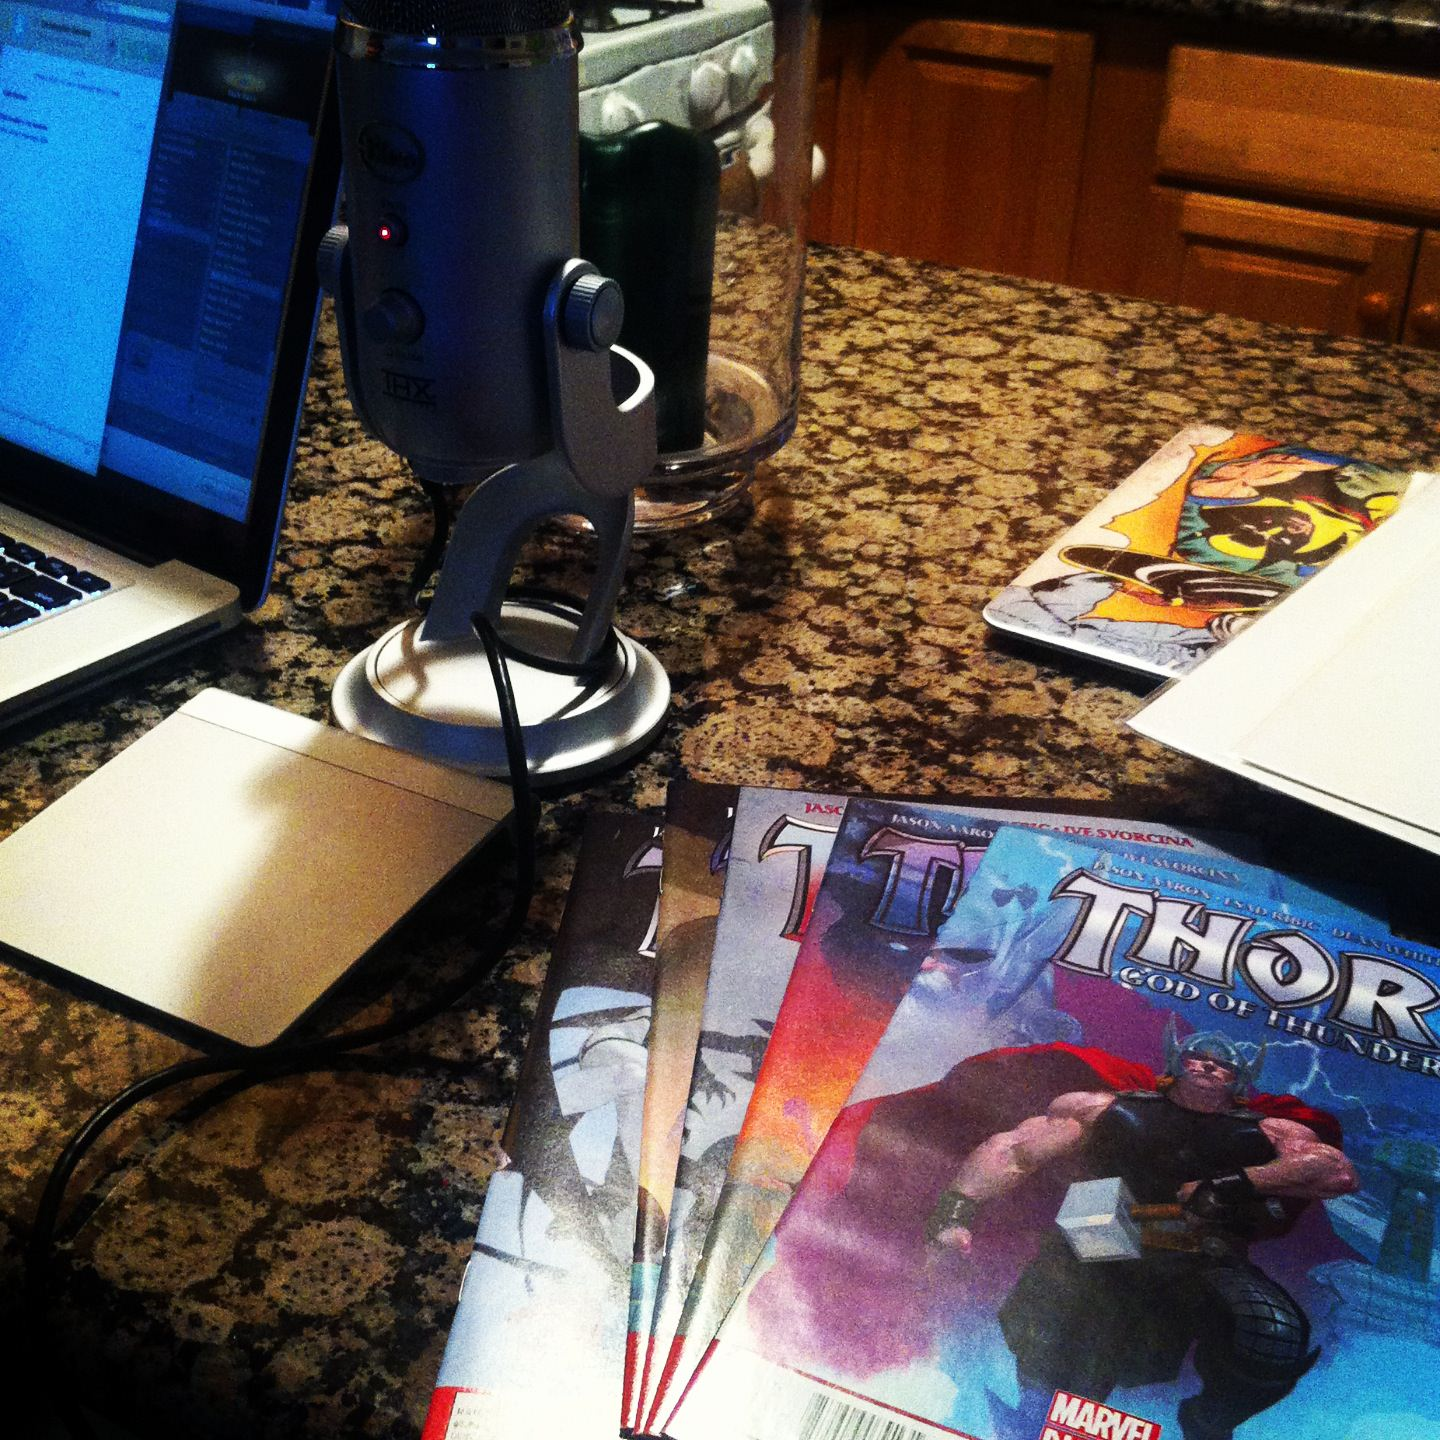 Photo of a microphone and some Thor comic books on a table.